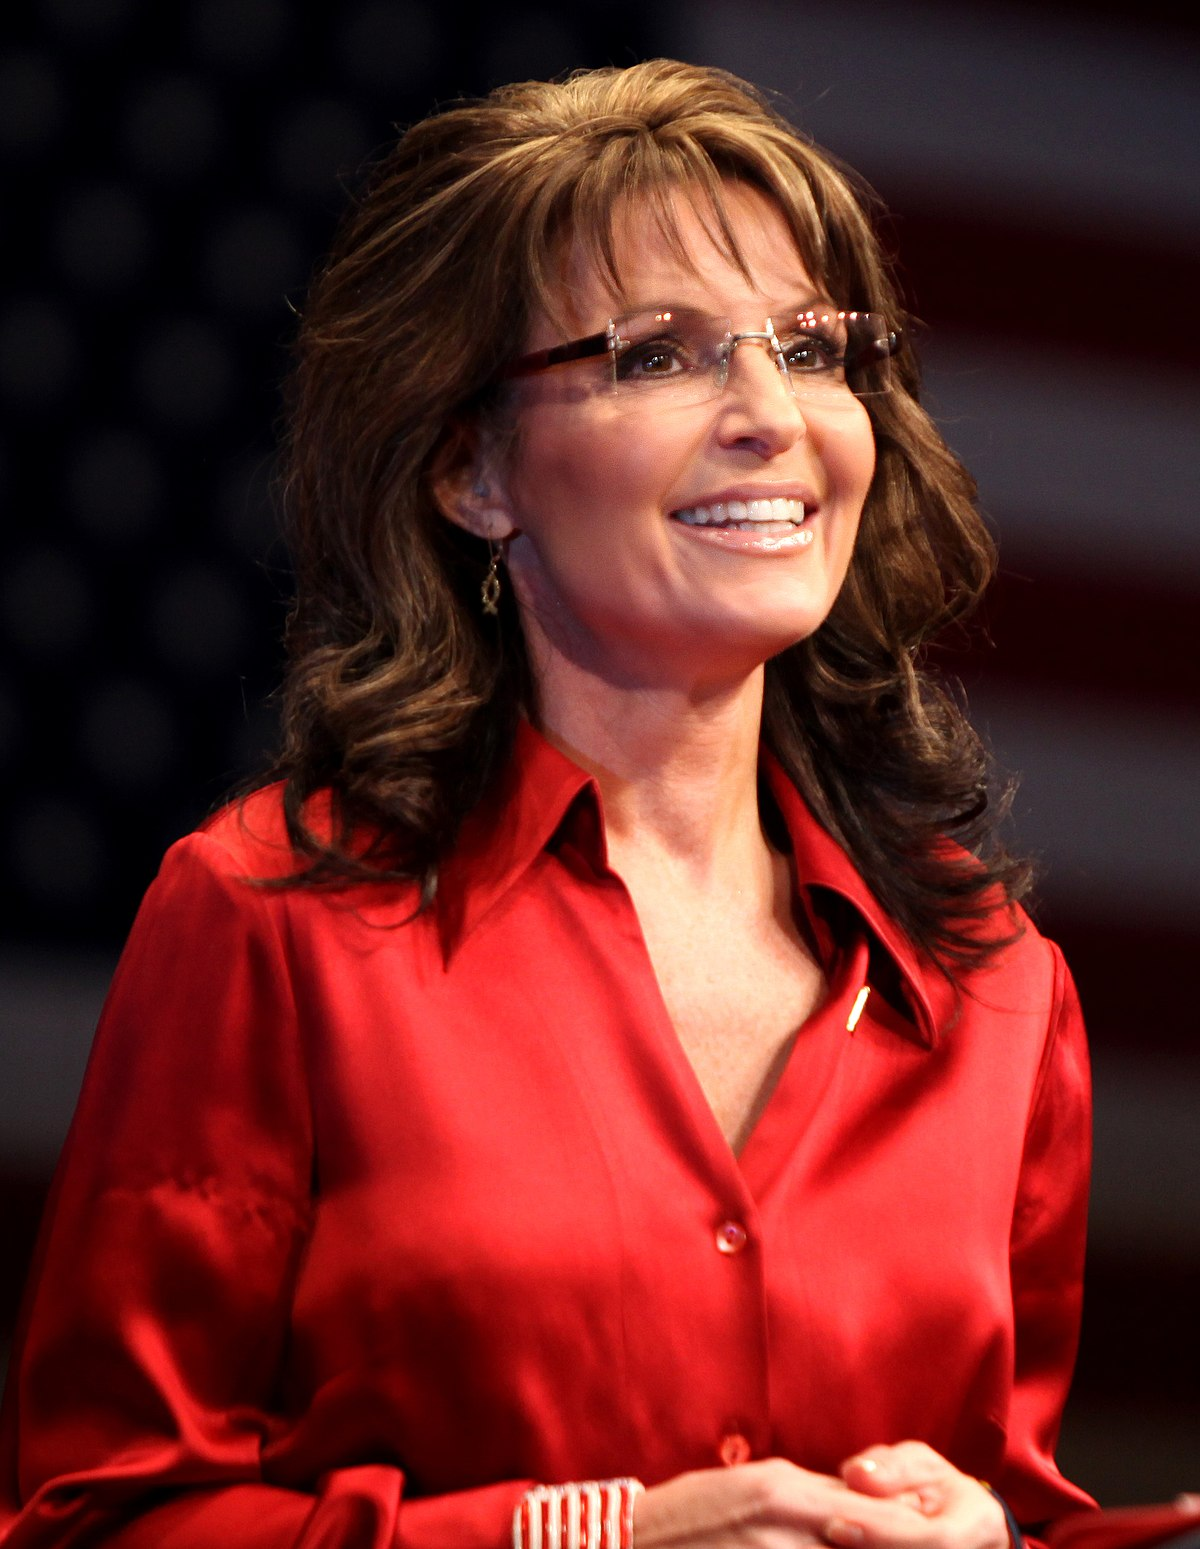 Images Sarah Palin nude photos 2019